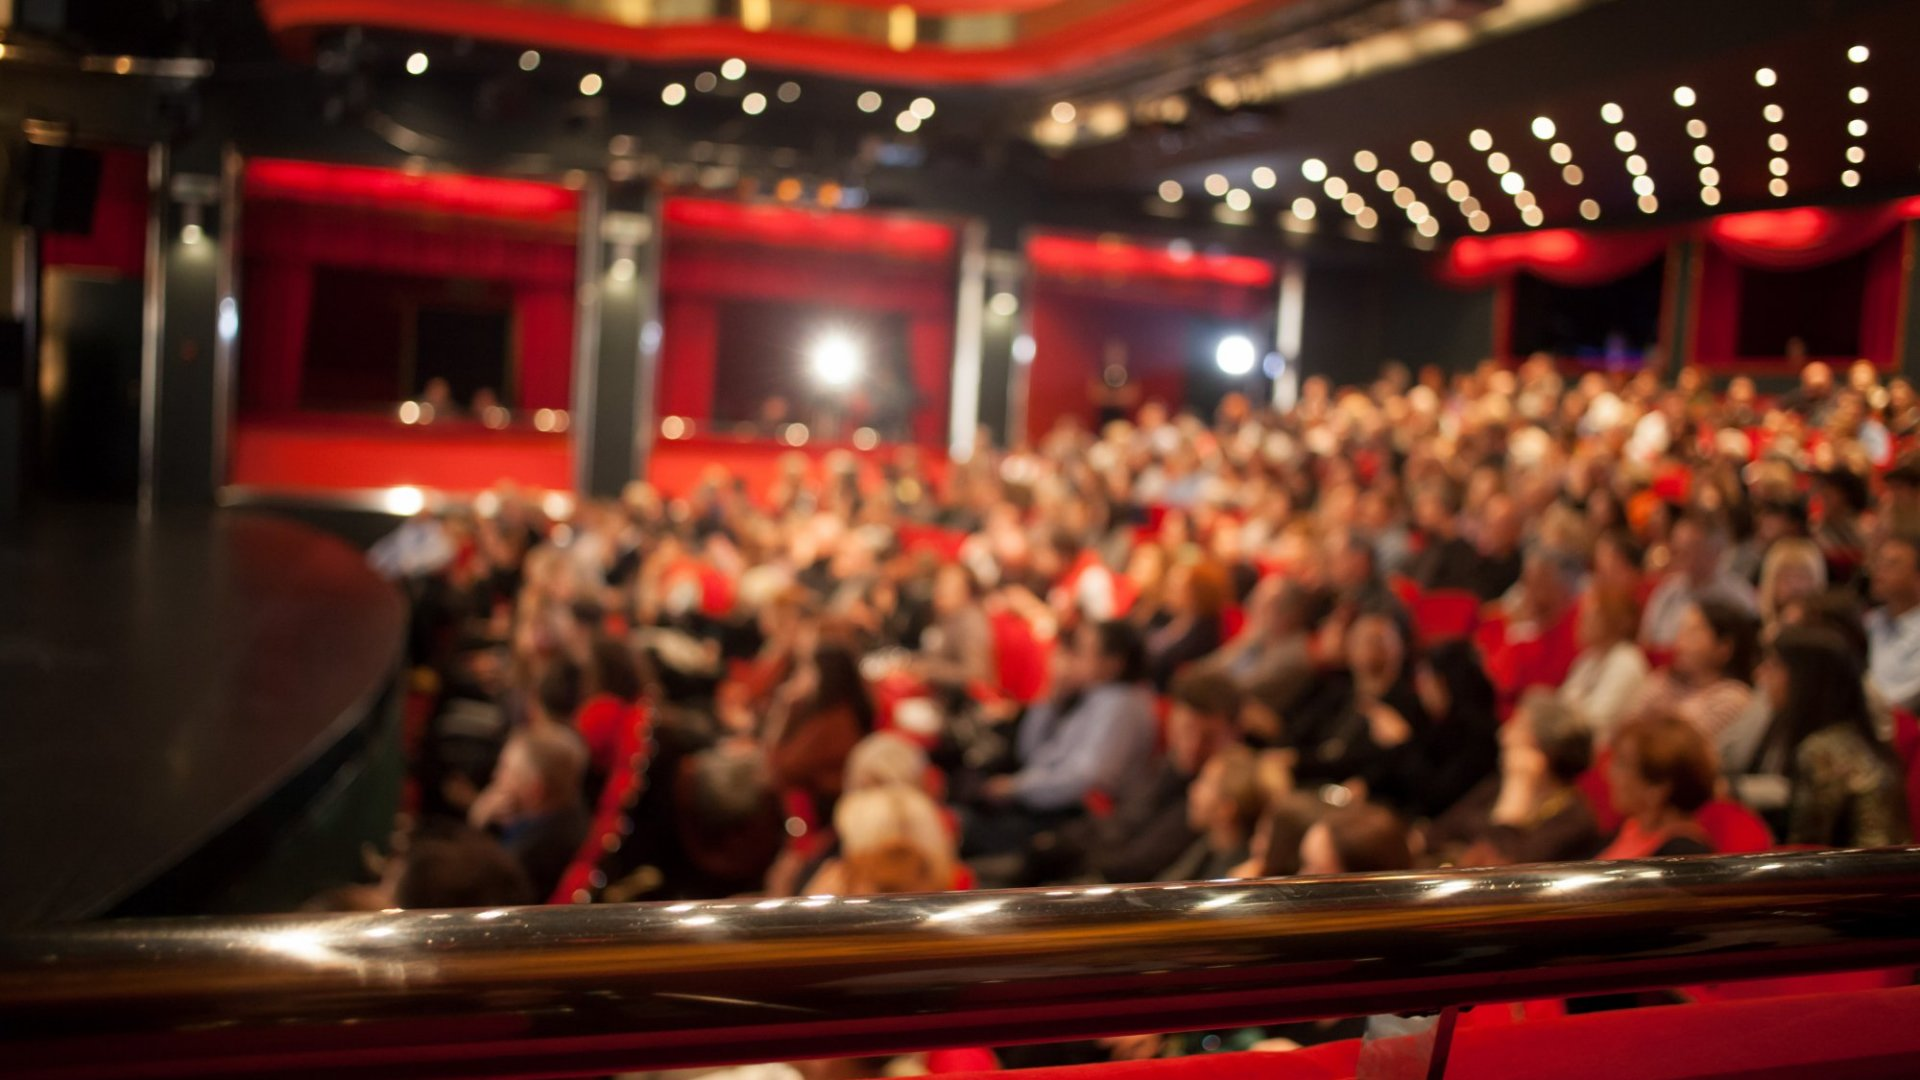 Want to Master Public Speaking? Use These 3 Insider Tips from a TEDx Coach